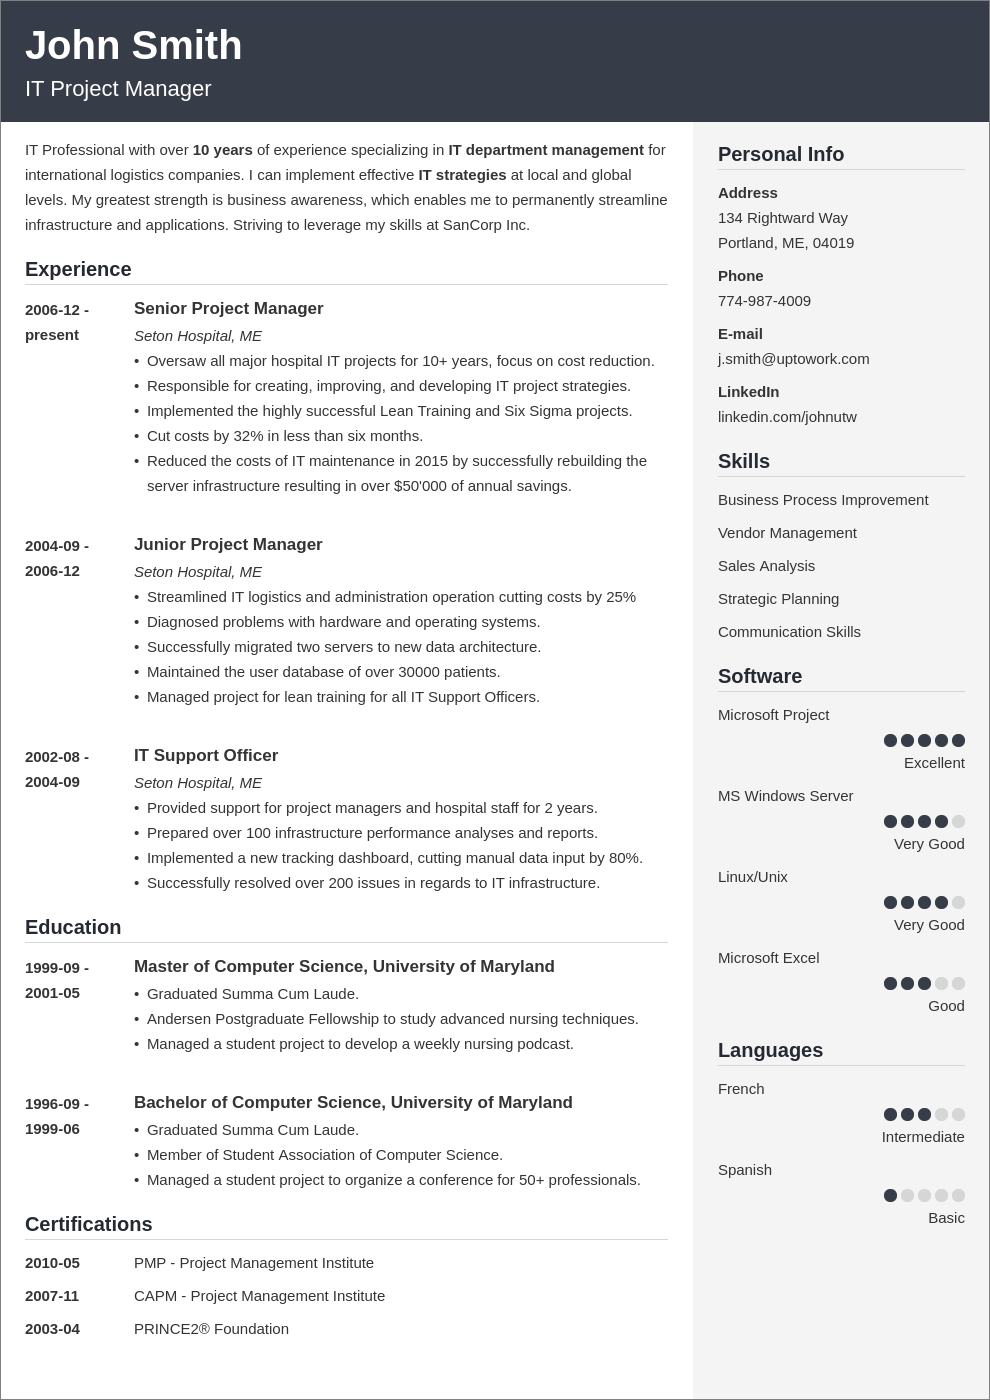 Resume Layout Examples Best How To Tips